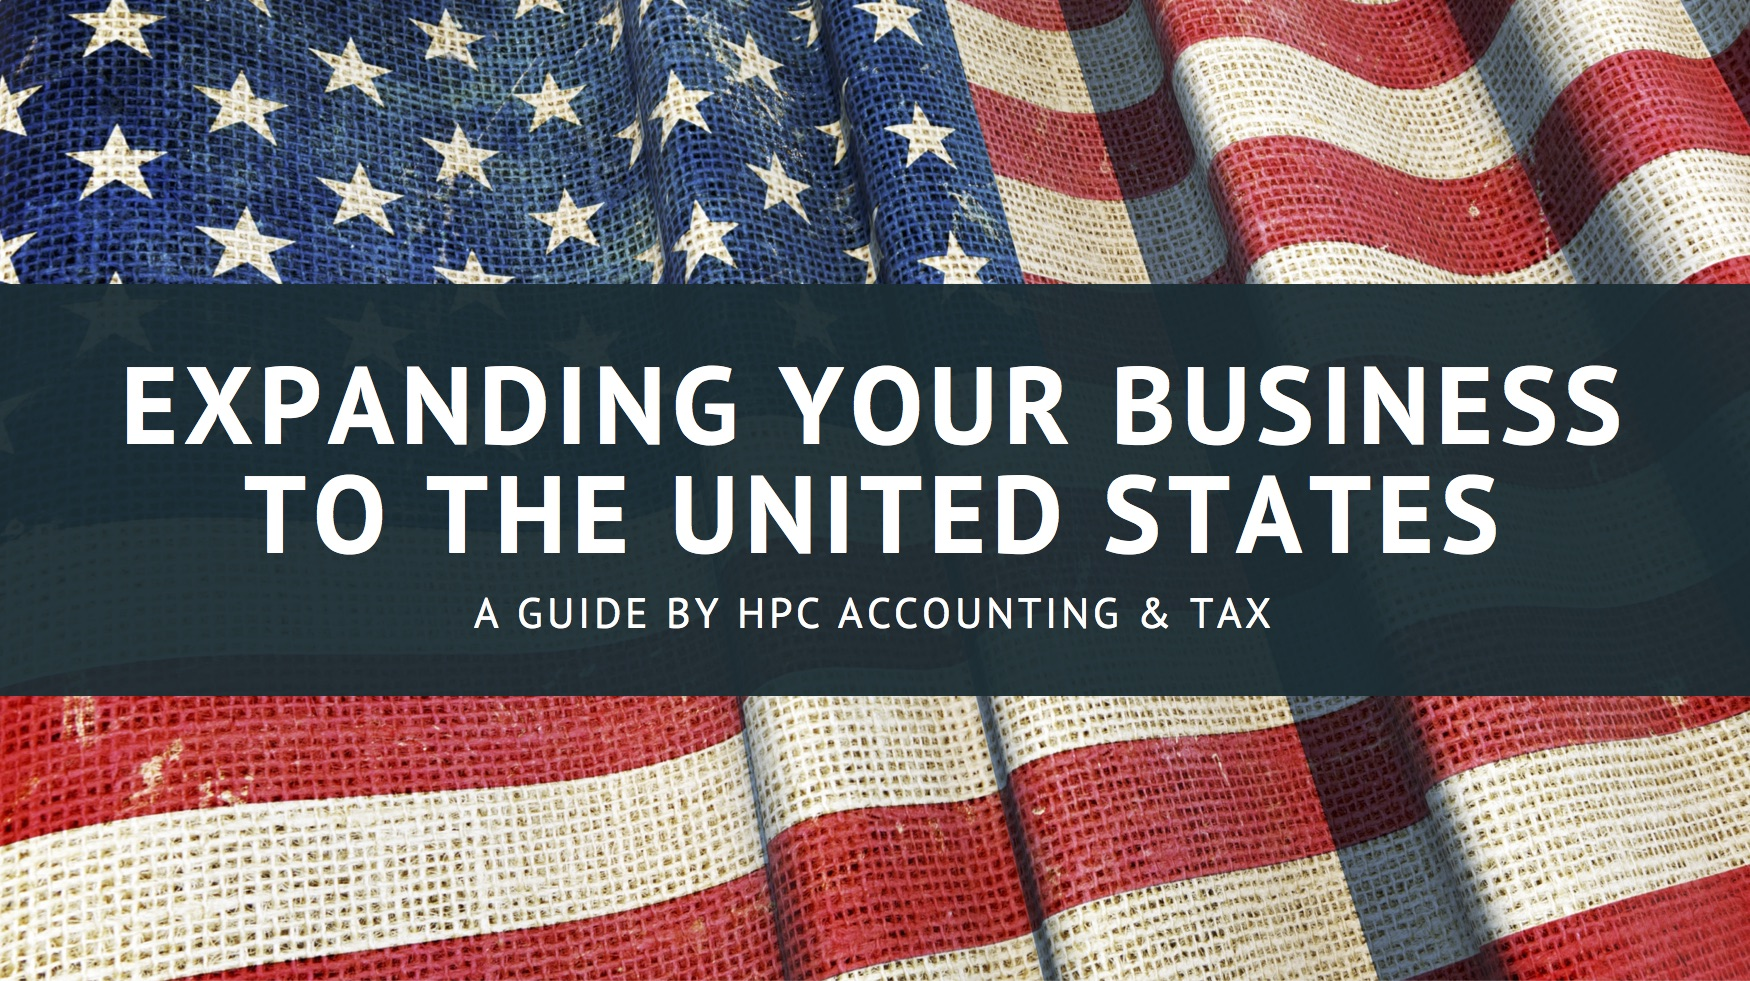 expanding-your-business-to-the-united-states.jpg